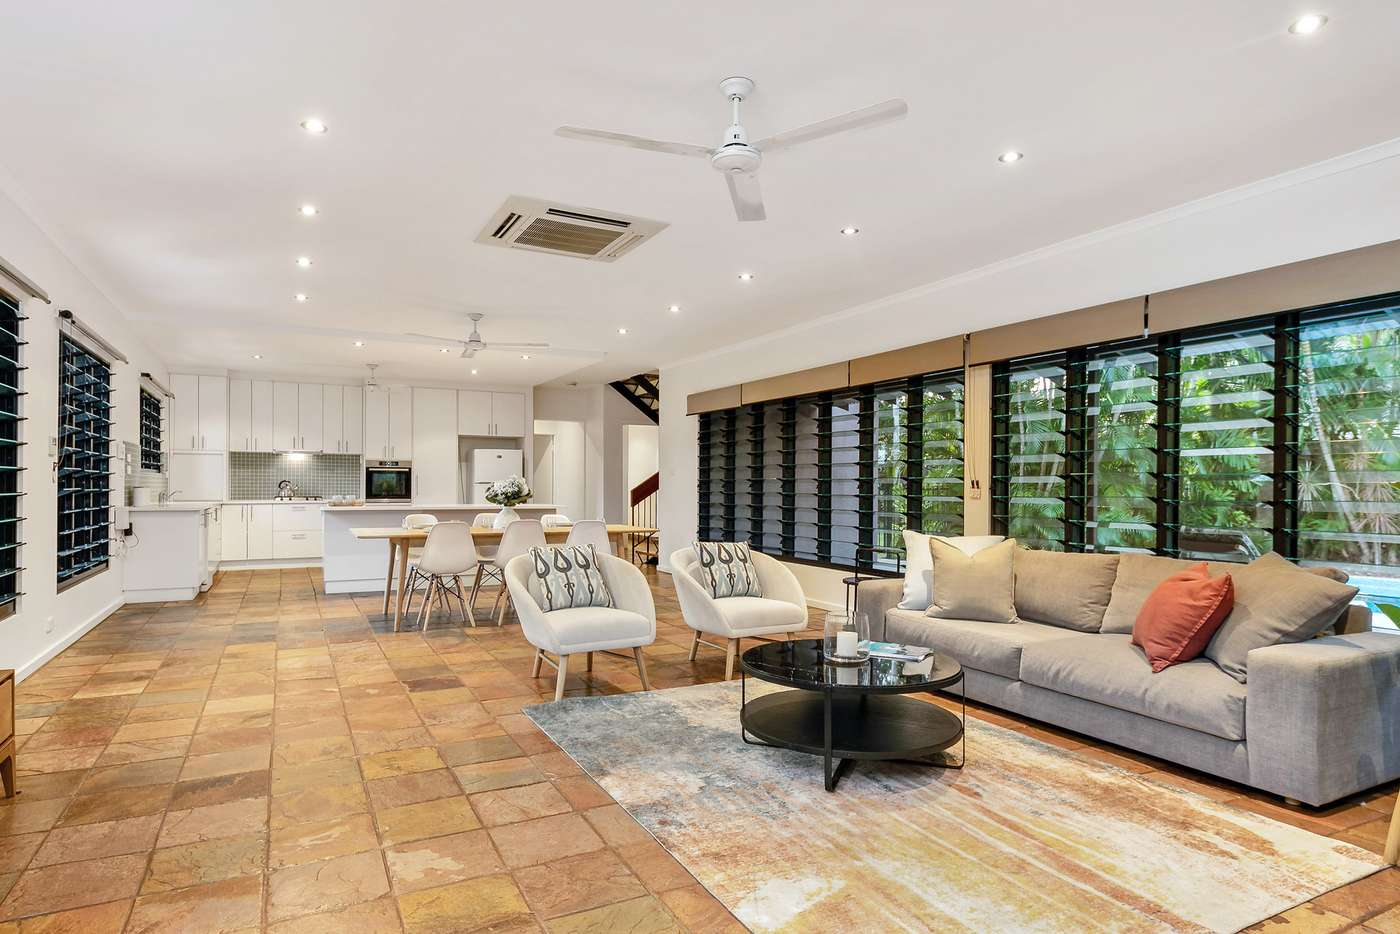 Main view of Homely house listing, 4 Schultze Street, Larrakeyah NT 820